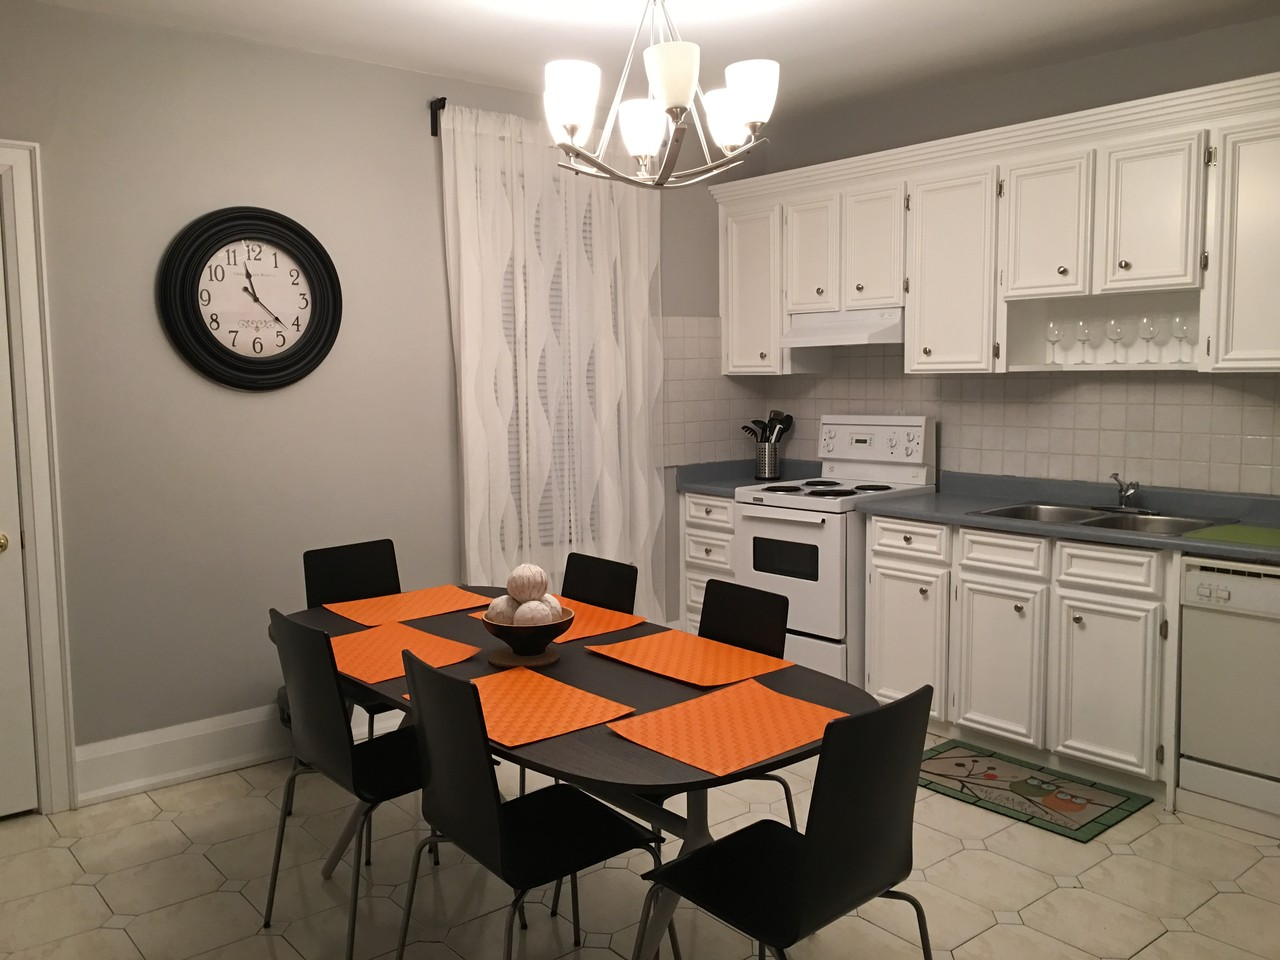 Grace toronto on m6g 3a6 3 bedroom apartment for rent padmapper for 3 bedroom apartments for rent toronto